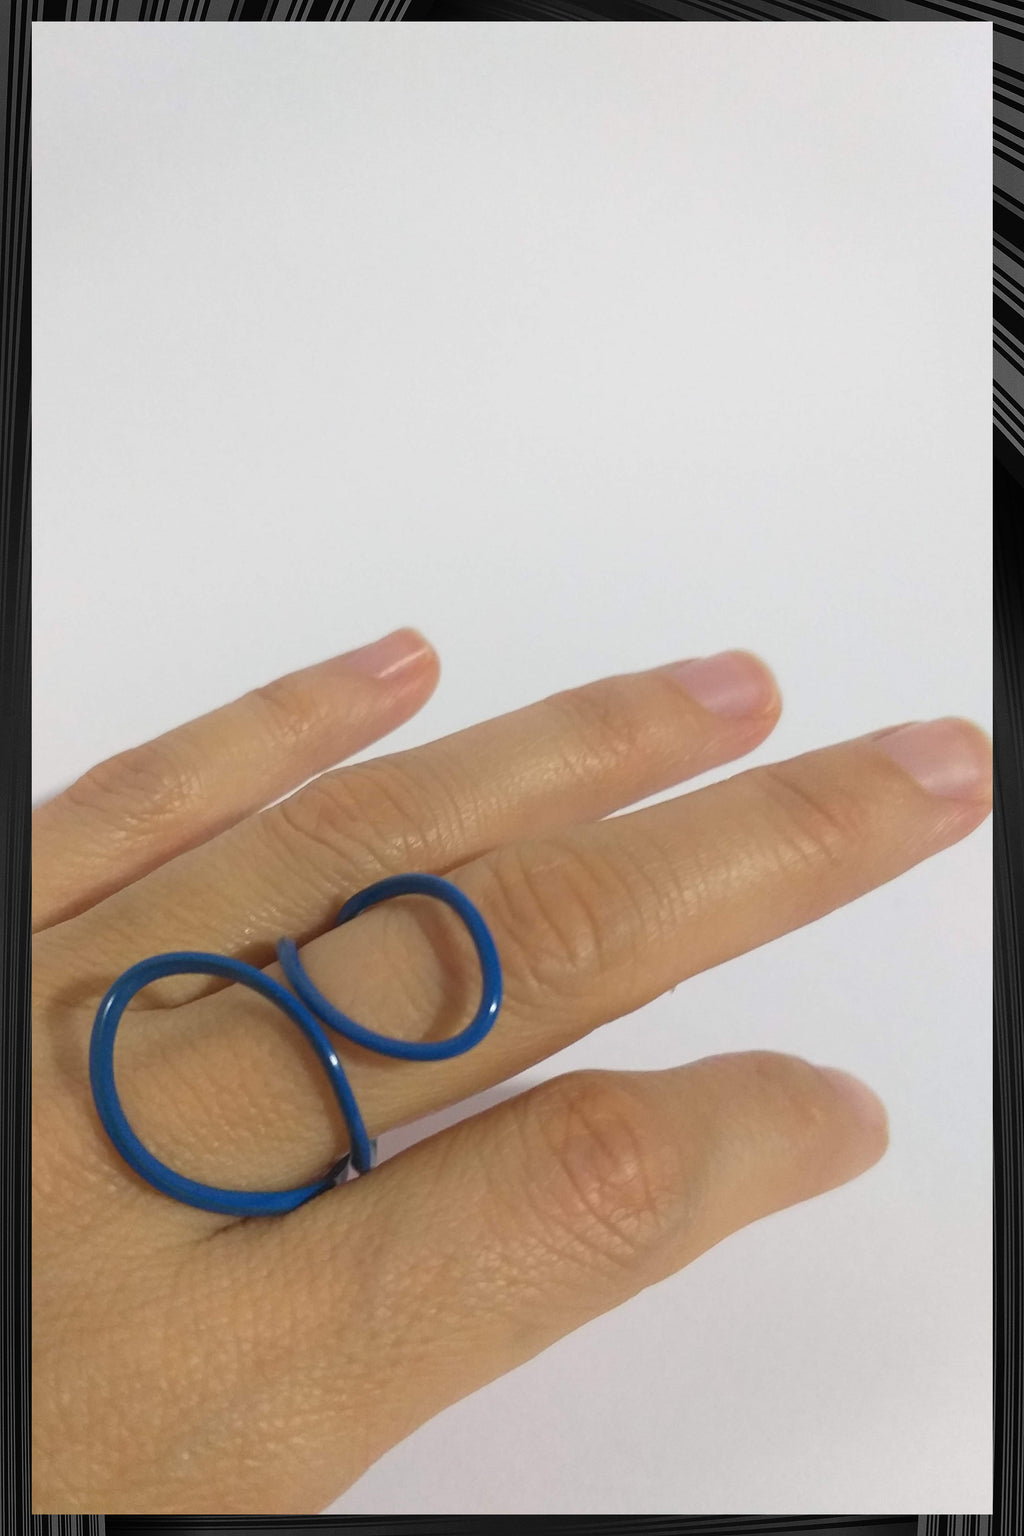 Blue Simple Ring | Free Delivery - Quick Shipping